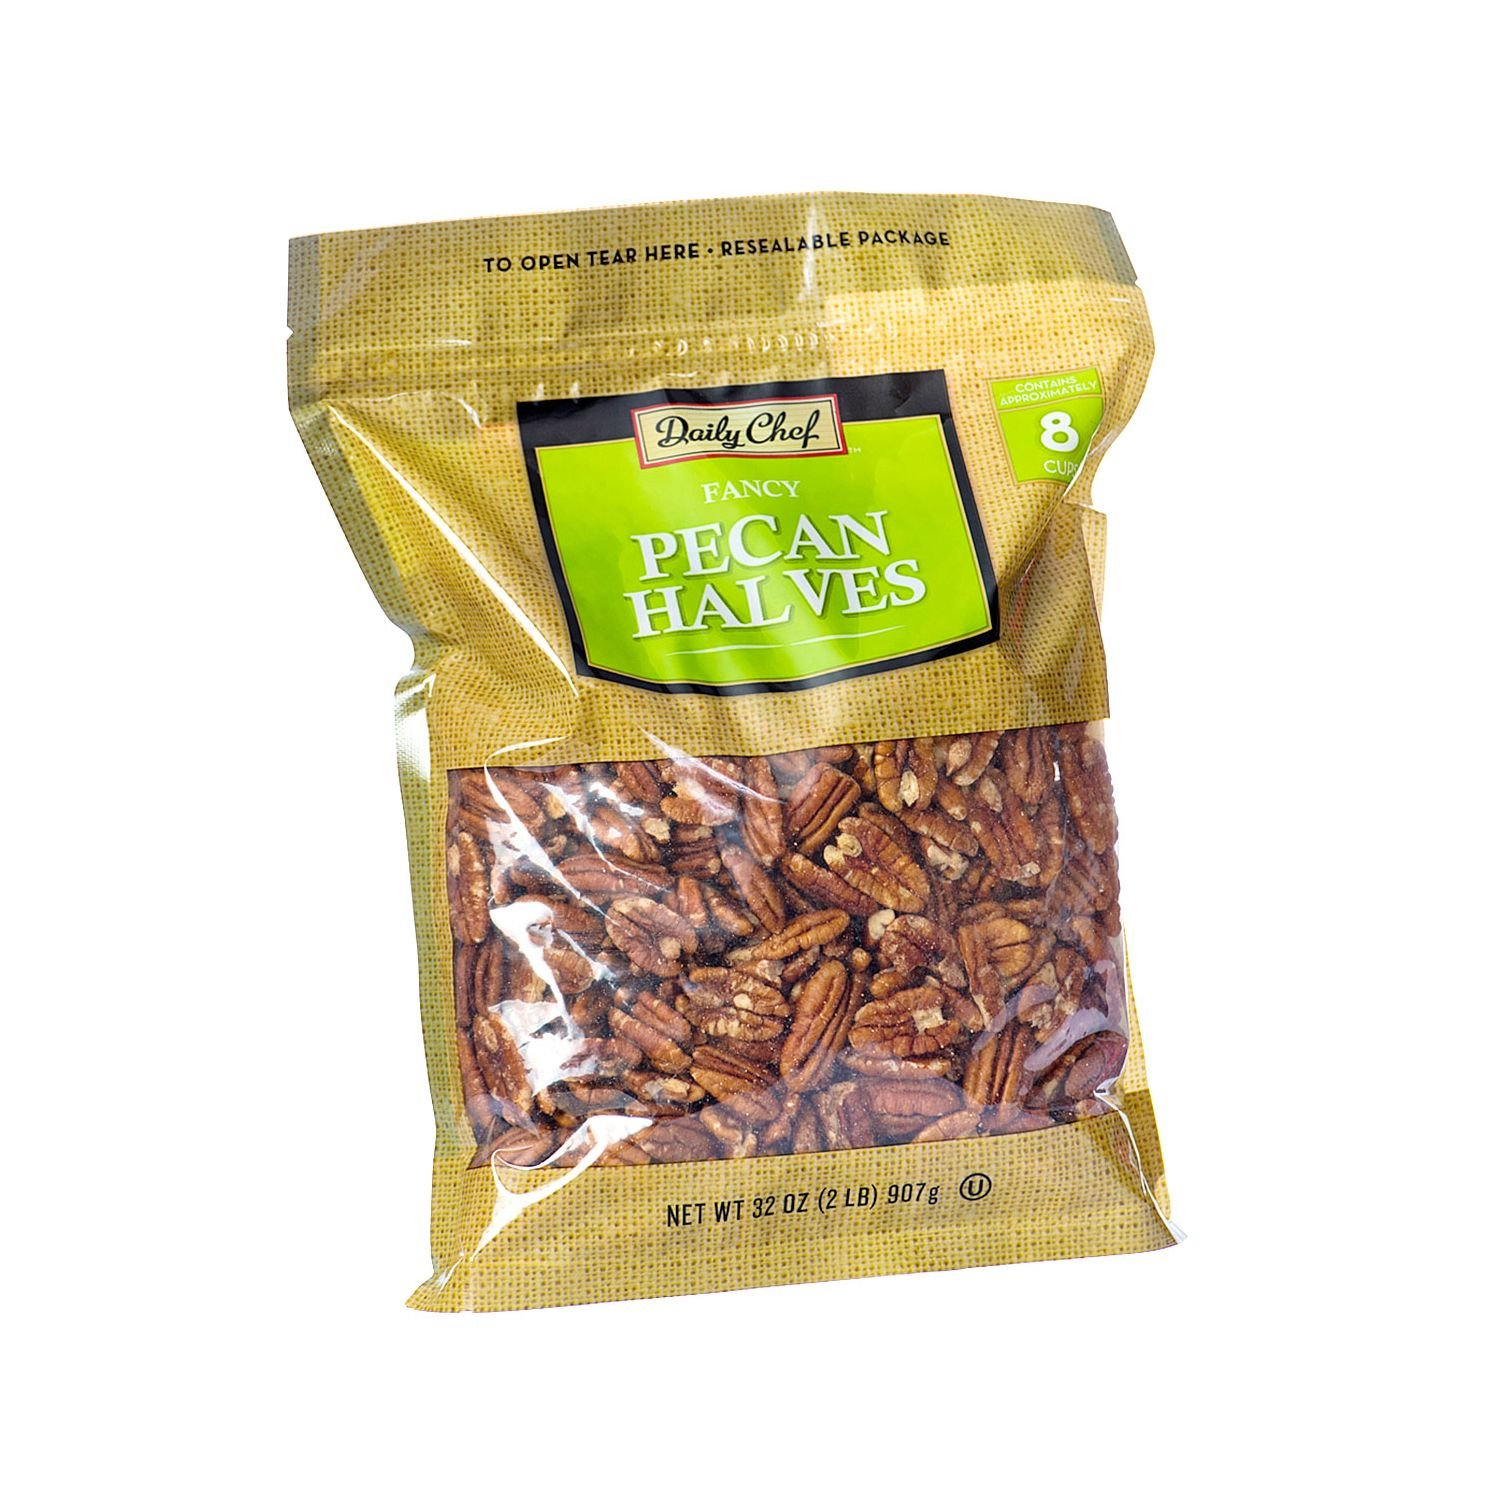 Daily Chef Pecan Halves (2 lb.) (pack of 6)